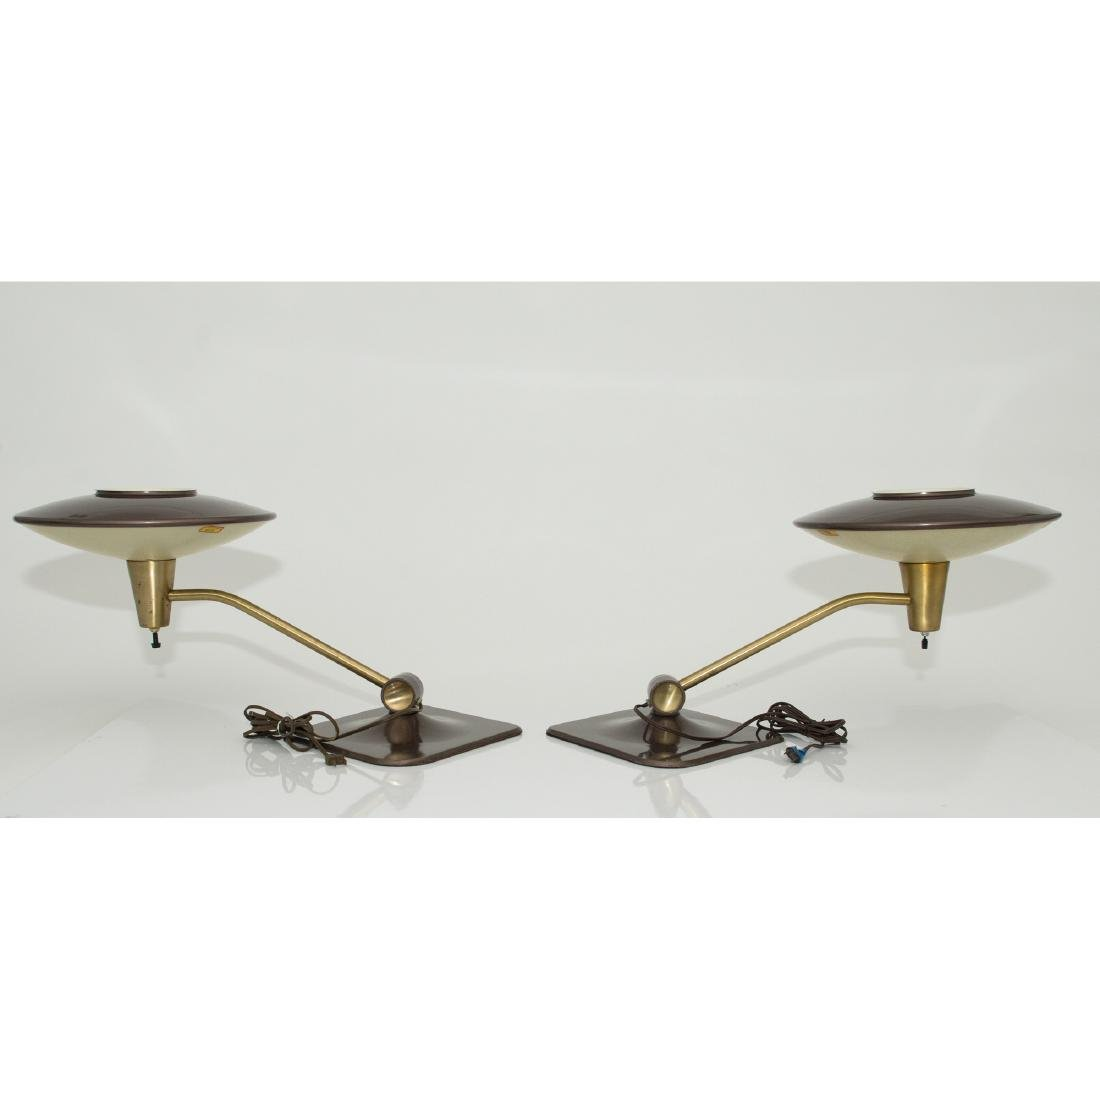 PAIR DAZOR MID-CENTURY MODERN FLYING SAUCER LAMPS